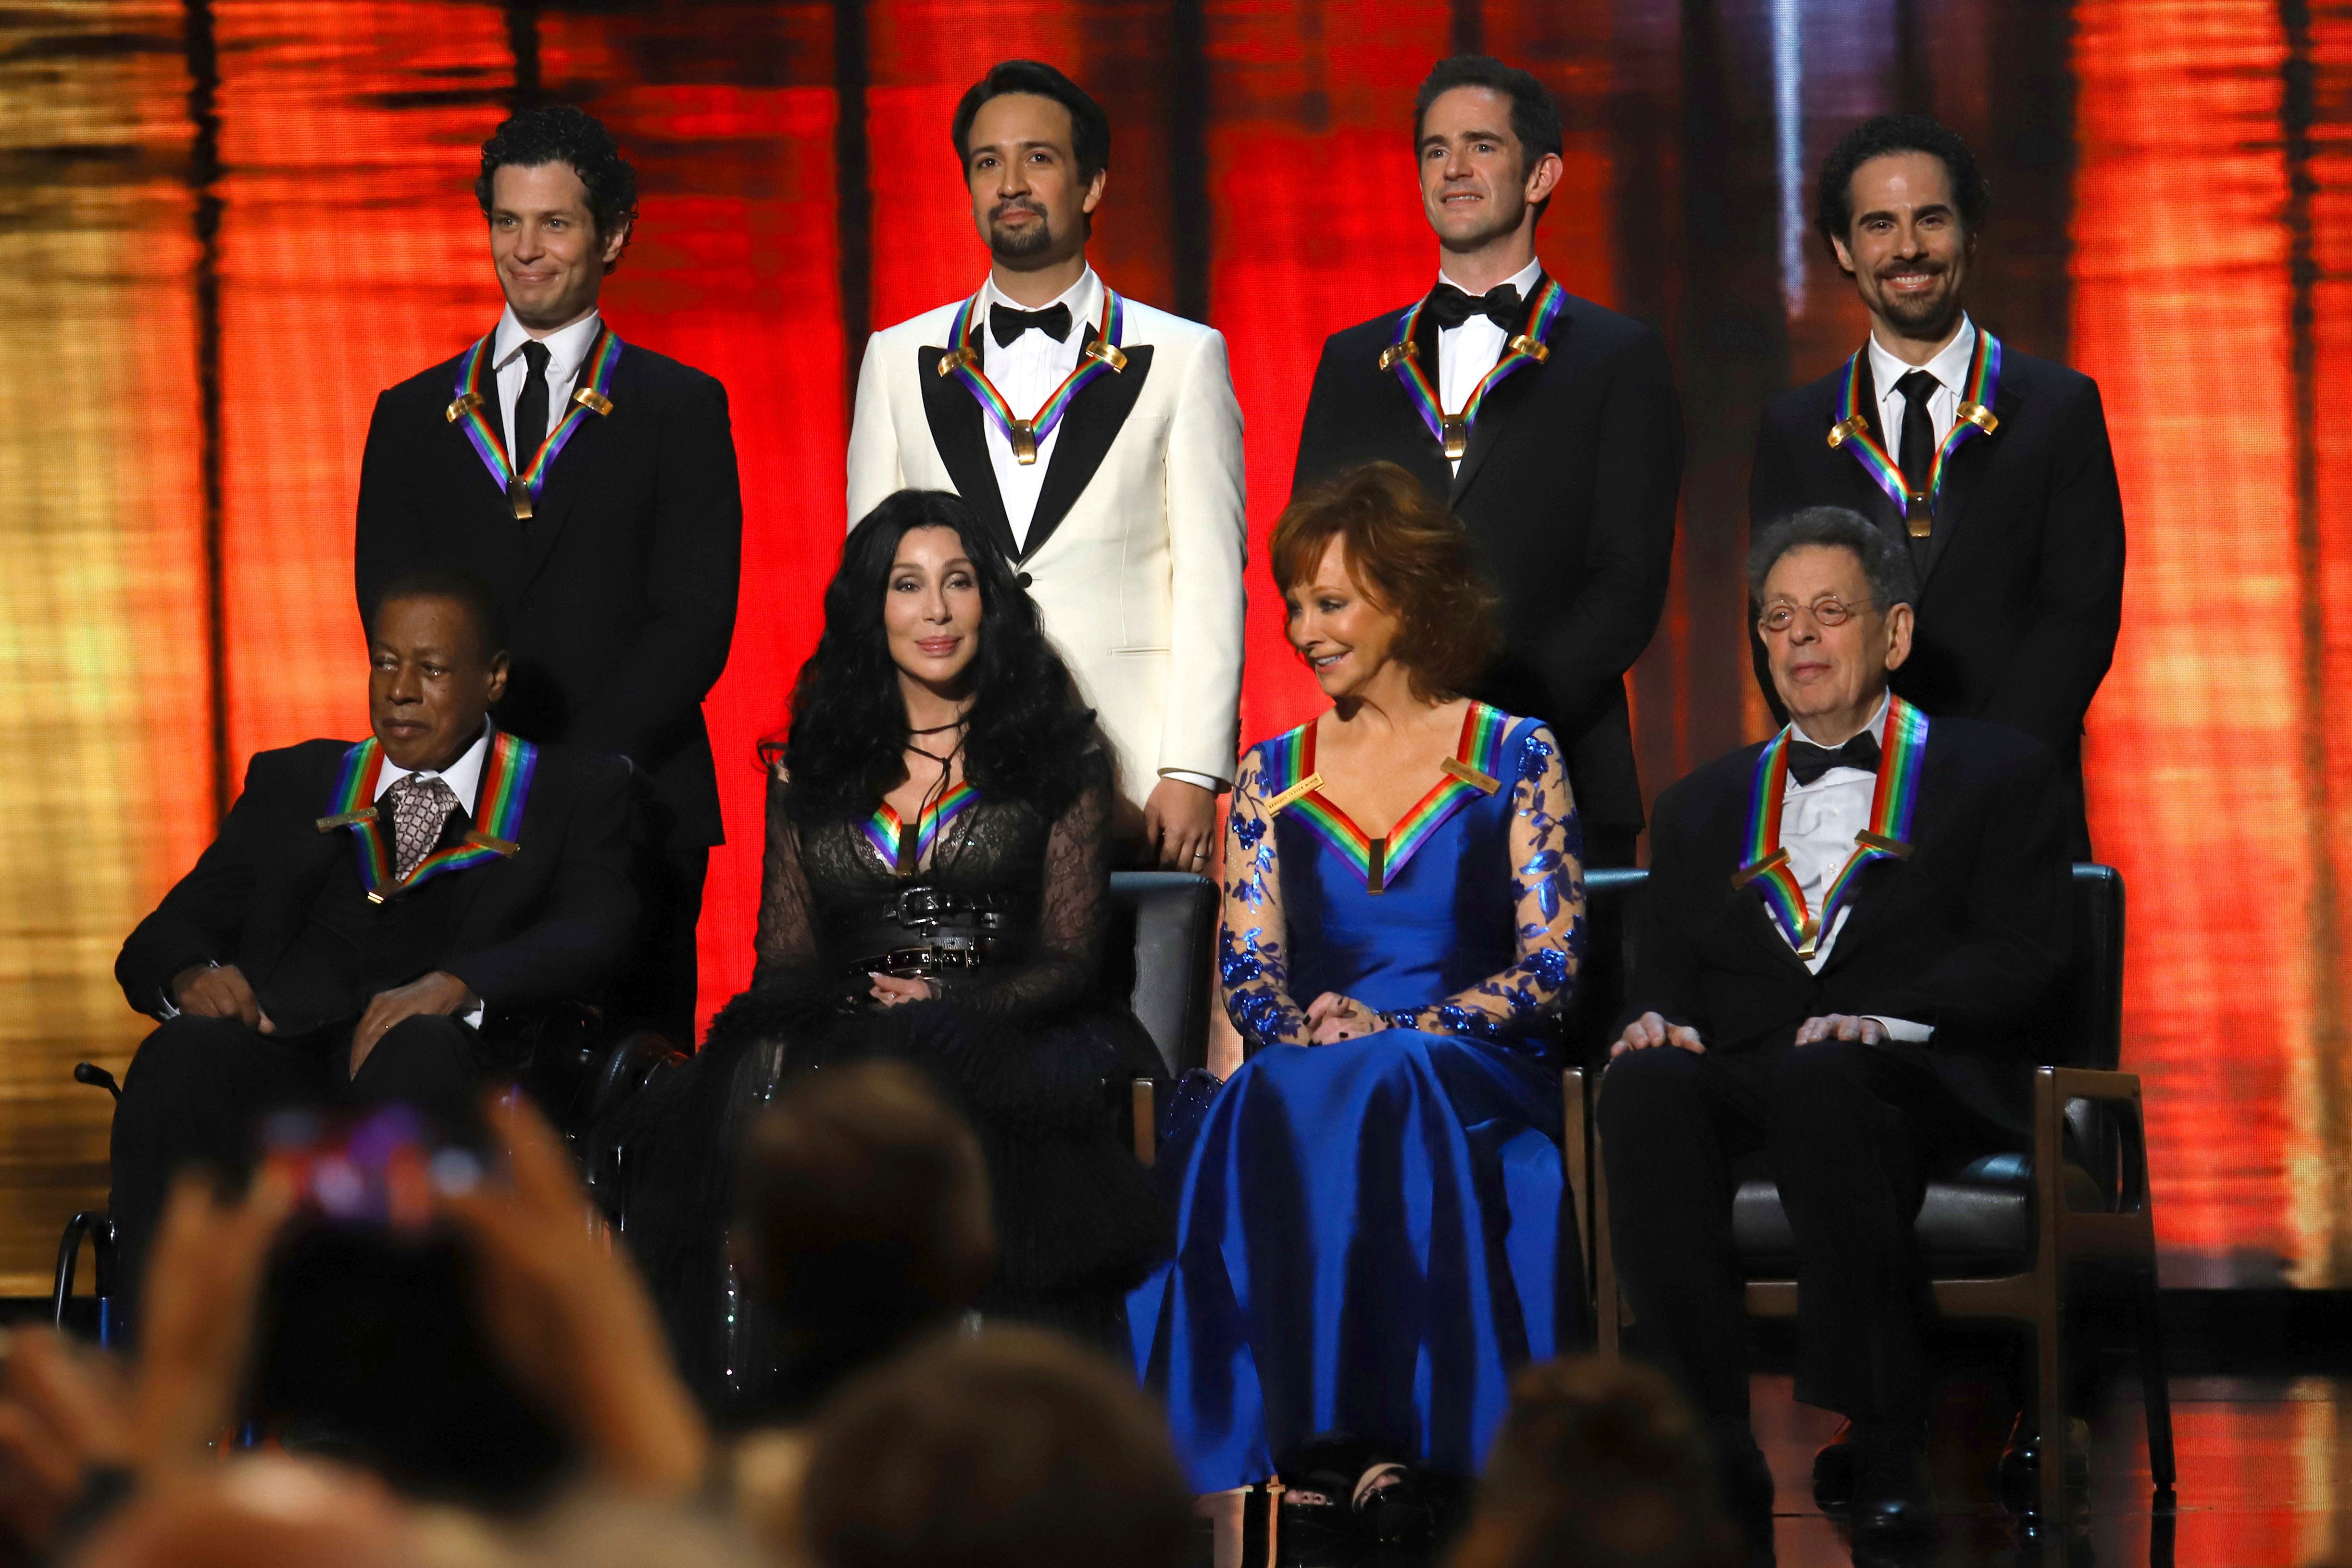 """2018 Kennedy Center honorees, front row from left, Wayne Shorter, Cher, Reba McEntire, Philip Glass; and back row from left, the co-creators of """"Hamilton,"""" Thomas Kail, Lin-Manuel Miranda, Andy Blankenbuehler and Alex Lacamoire appear on stage during the 41st Annual Kennedy Center Honors at The Kennedy Center on Sunday, Dec. 2, 2018, in Washington. (Photo by Greg Allen/Invision/AP)"""